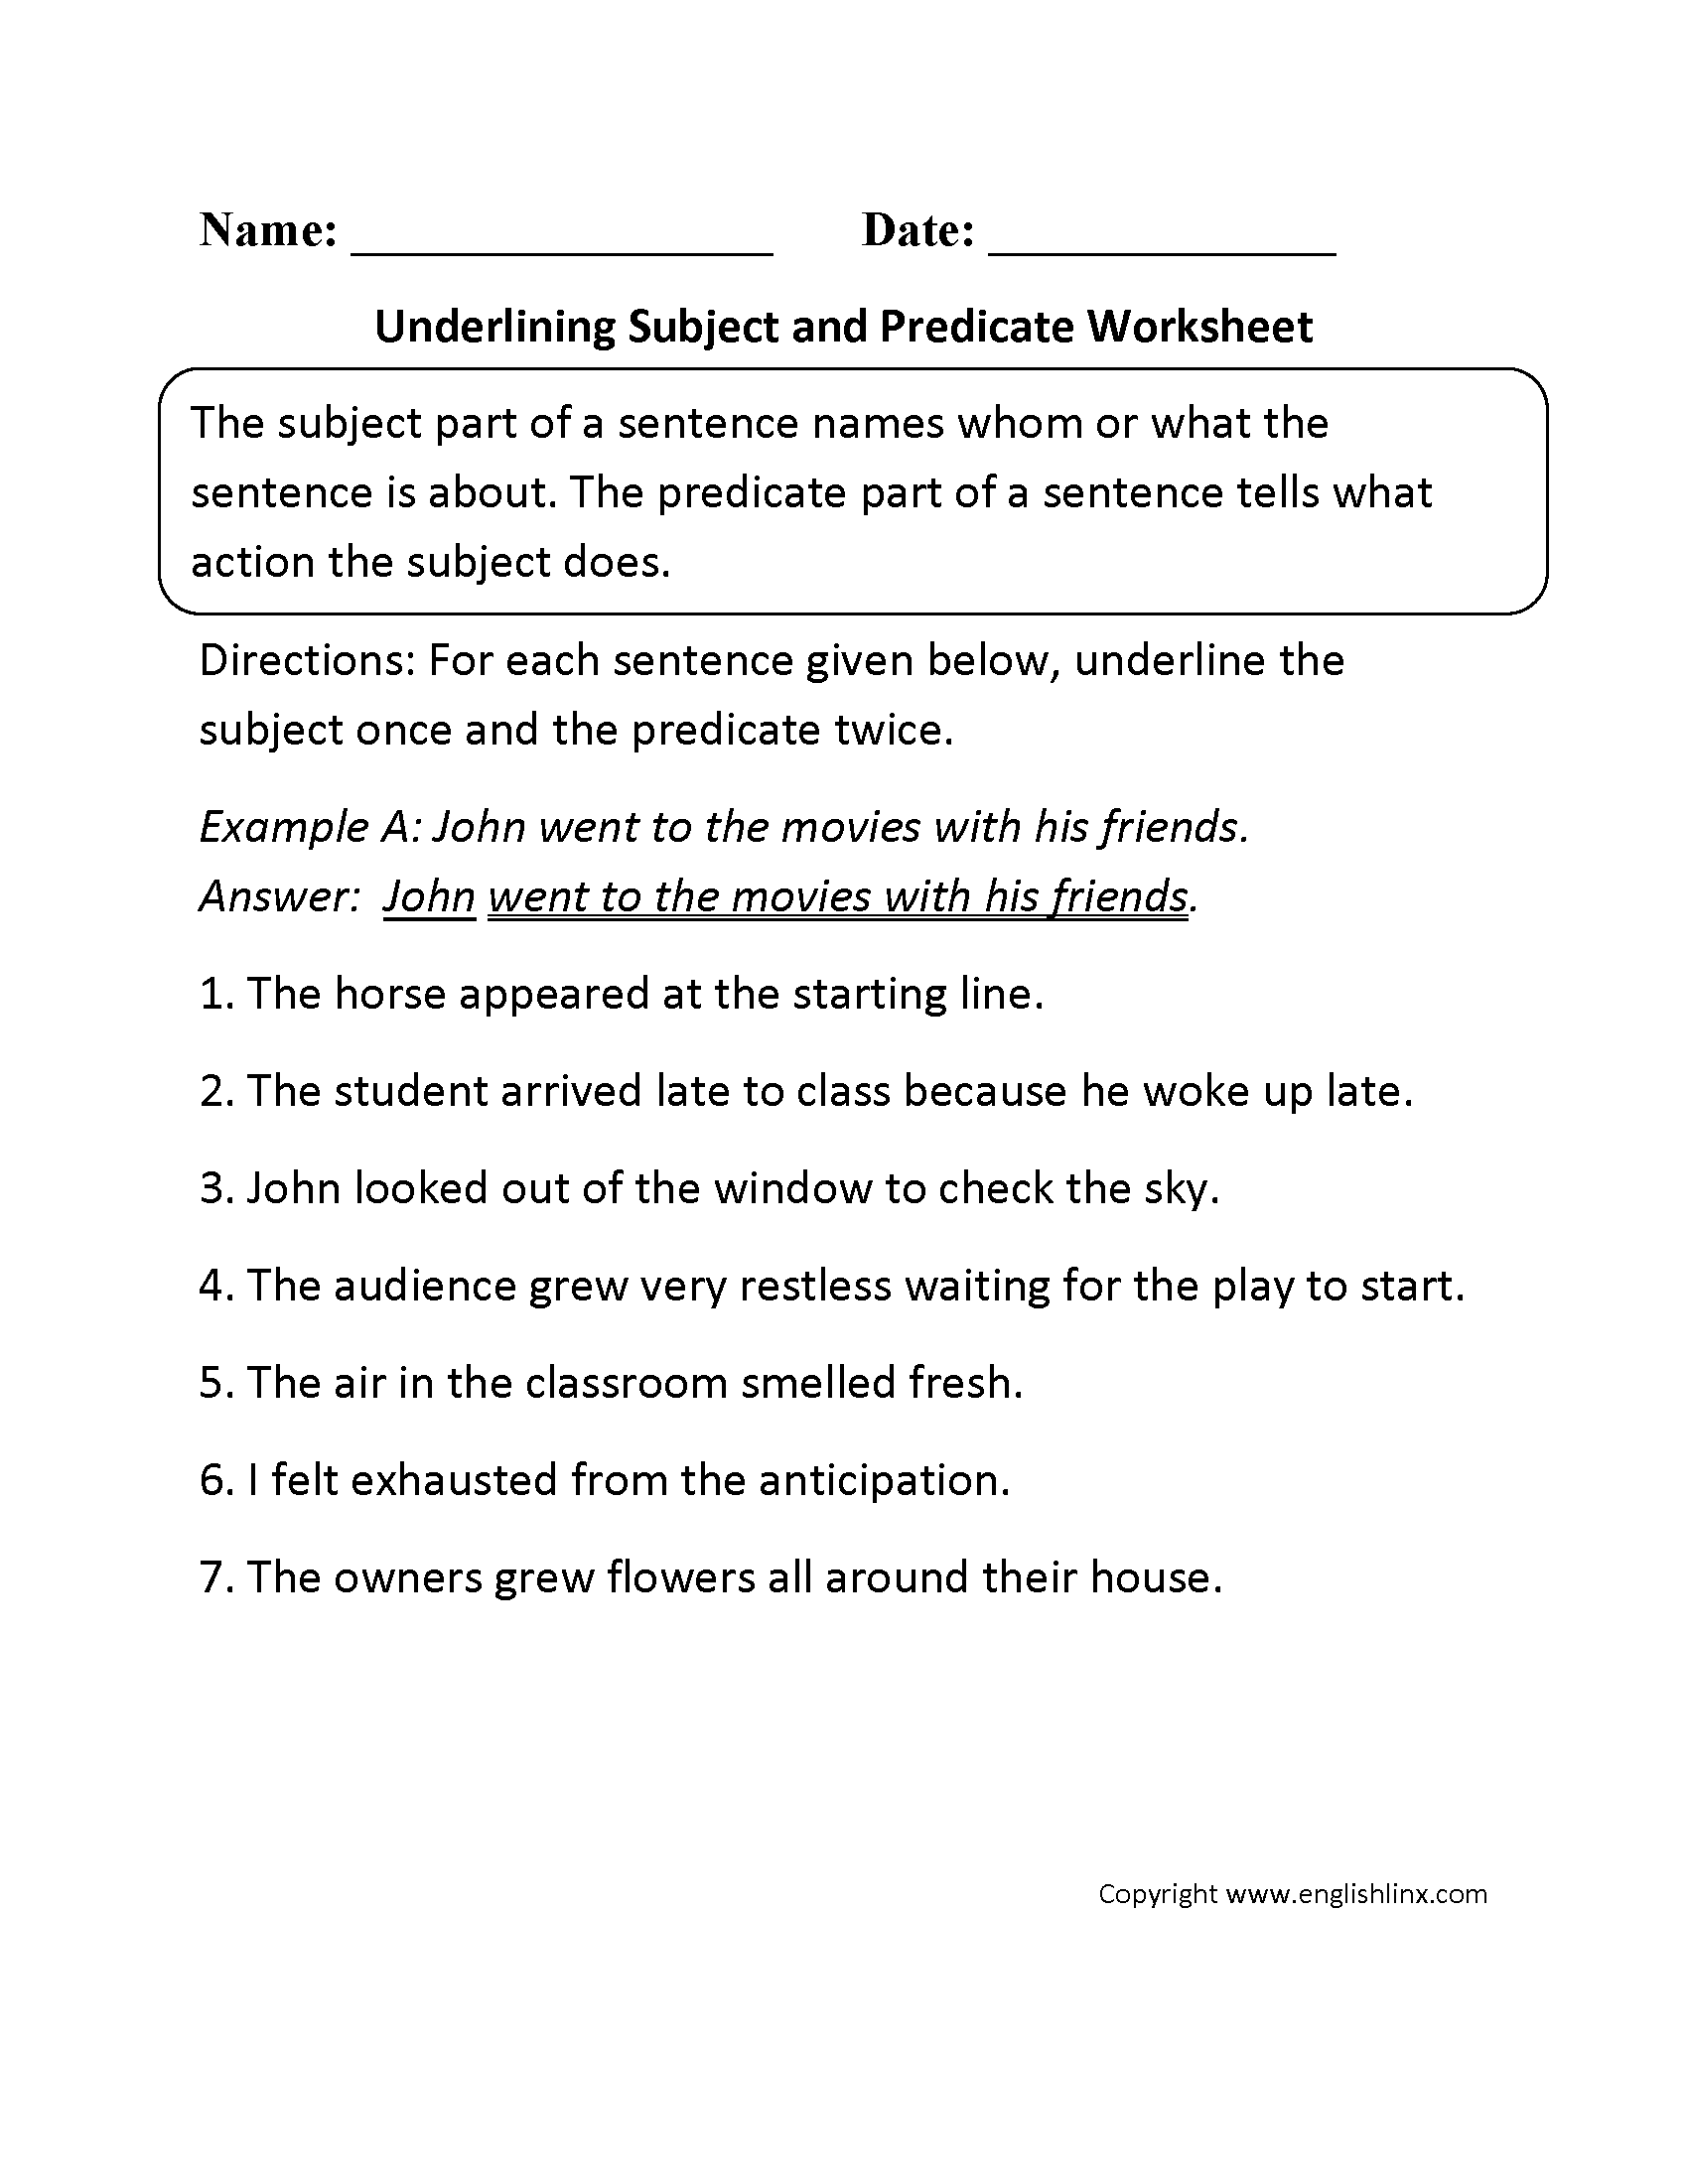 Subject and Predicate Worksheets – Predicate Worksheets